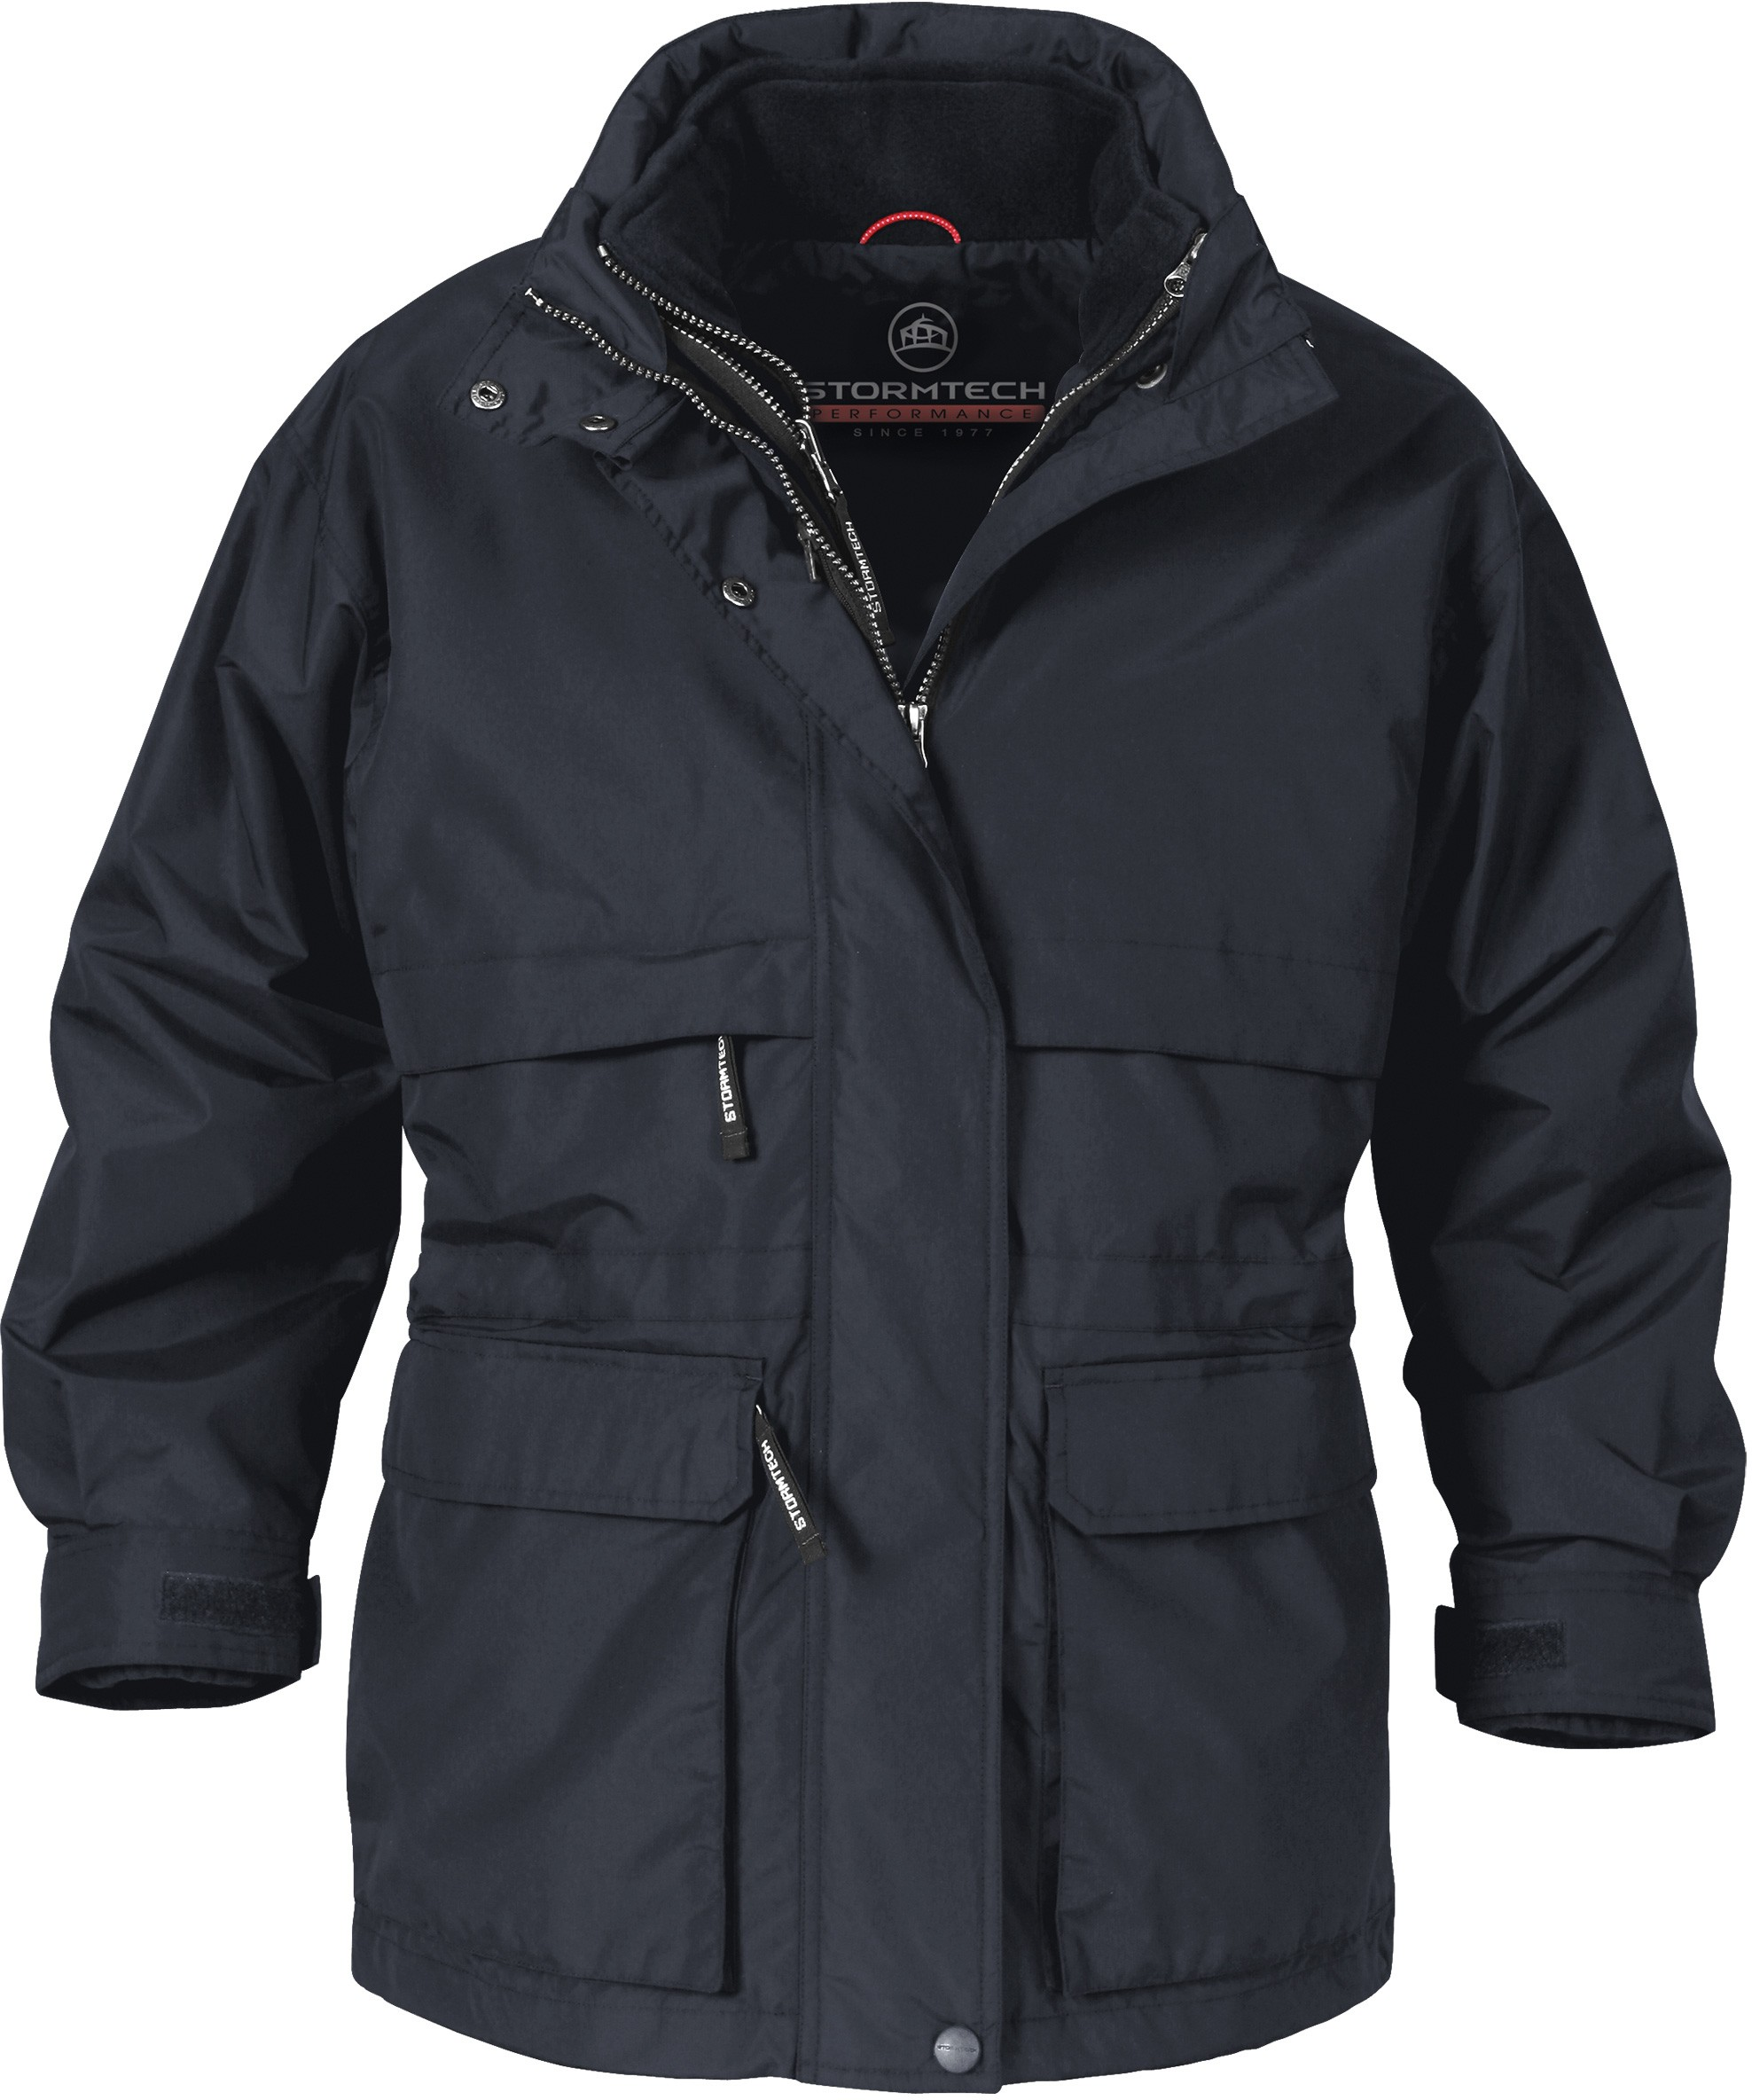 LJSTPX-2W -DF- Ladies Squall Packable Jacket